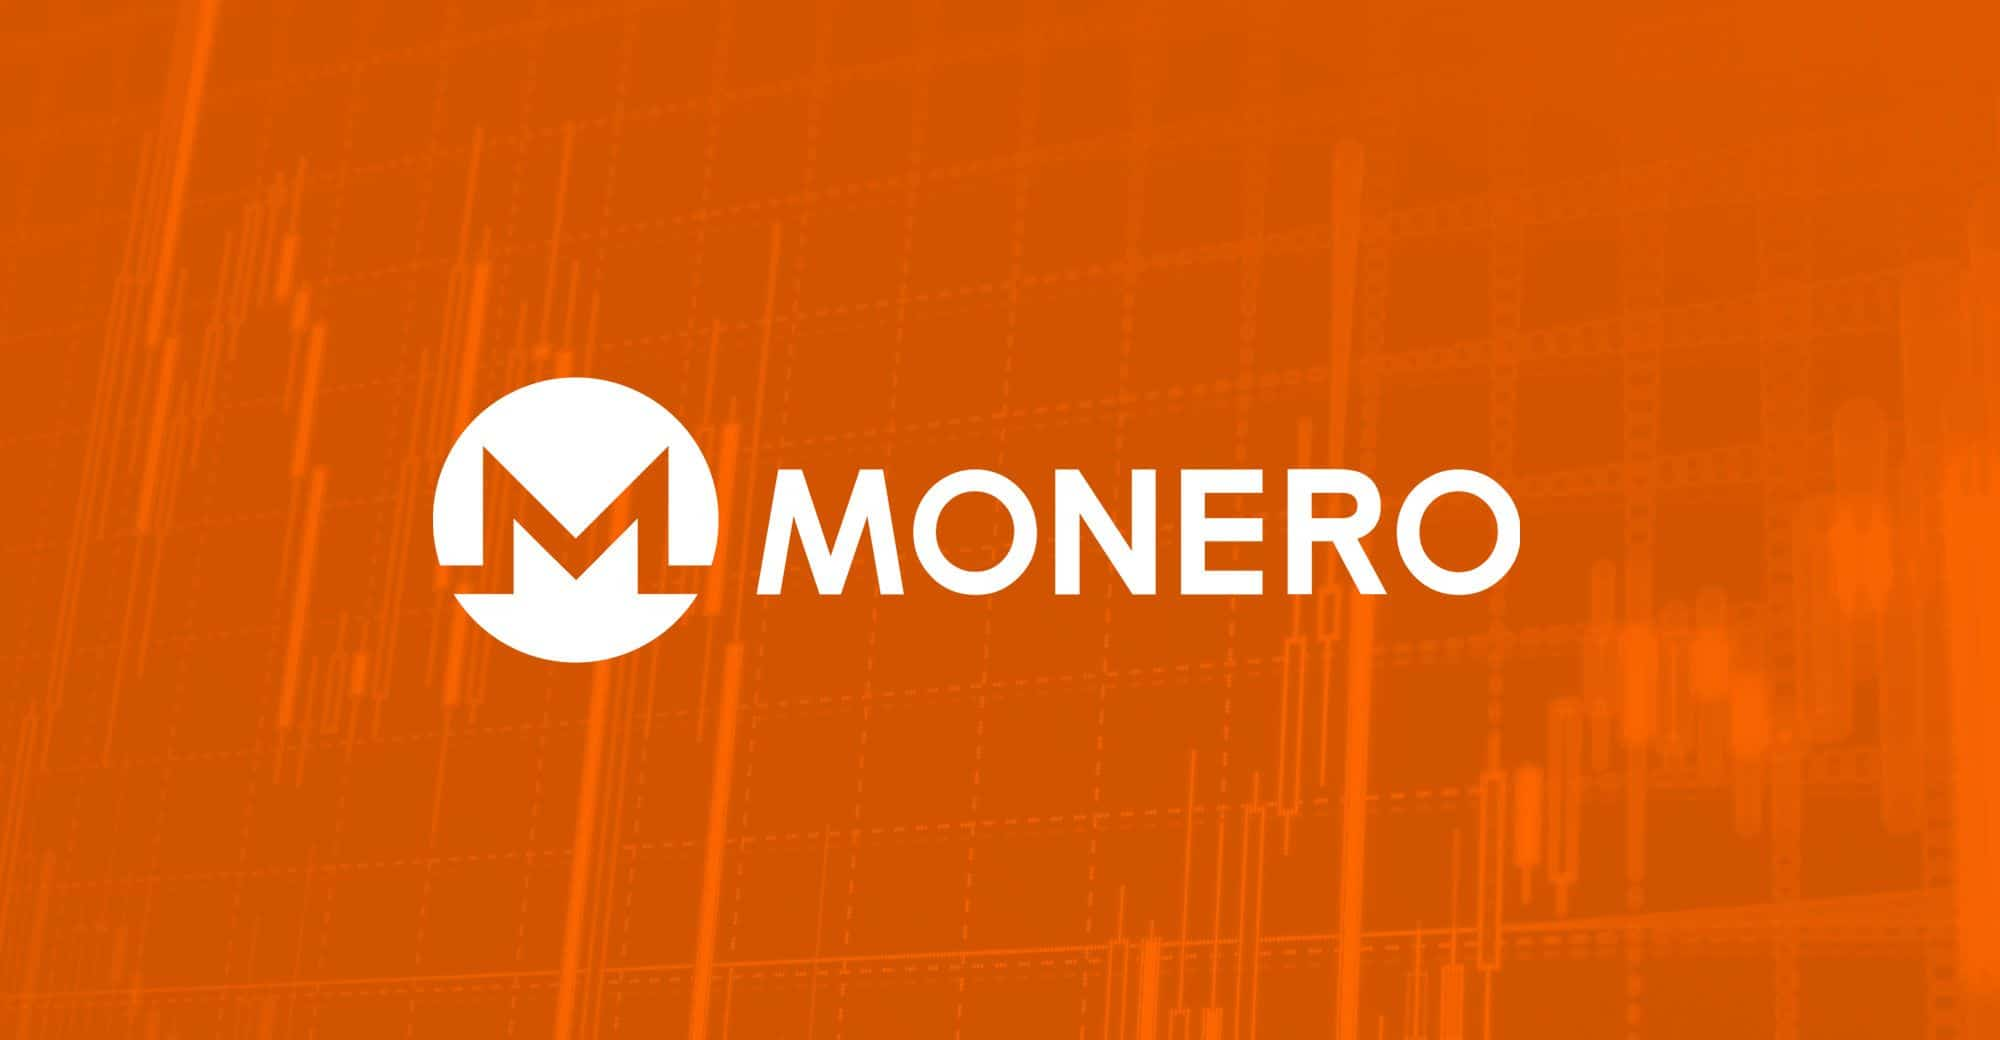 monero on the dash times com compressor - Monero (XMR) Mining Malware Is Targeting China And Taiwan Companies